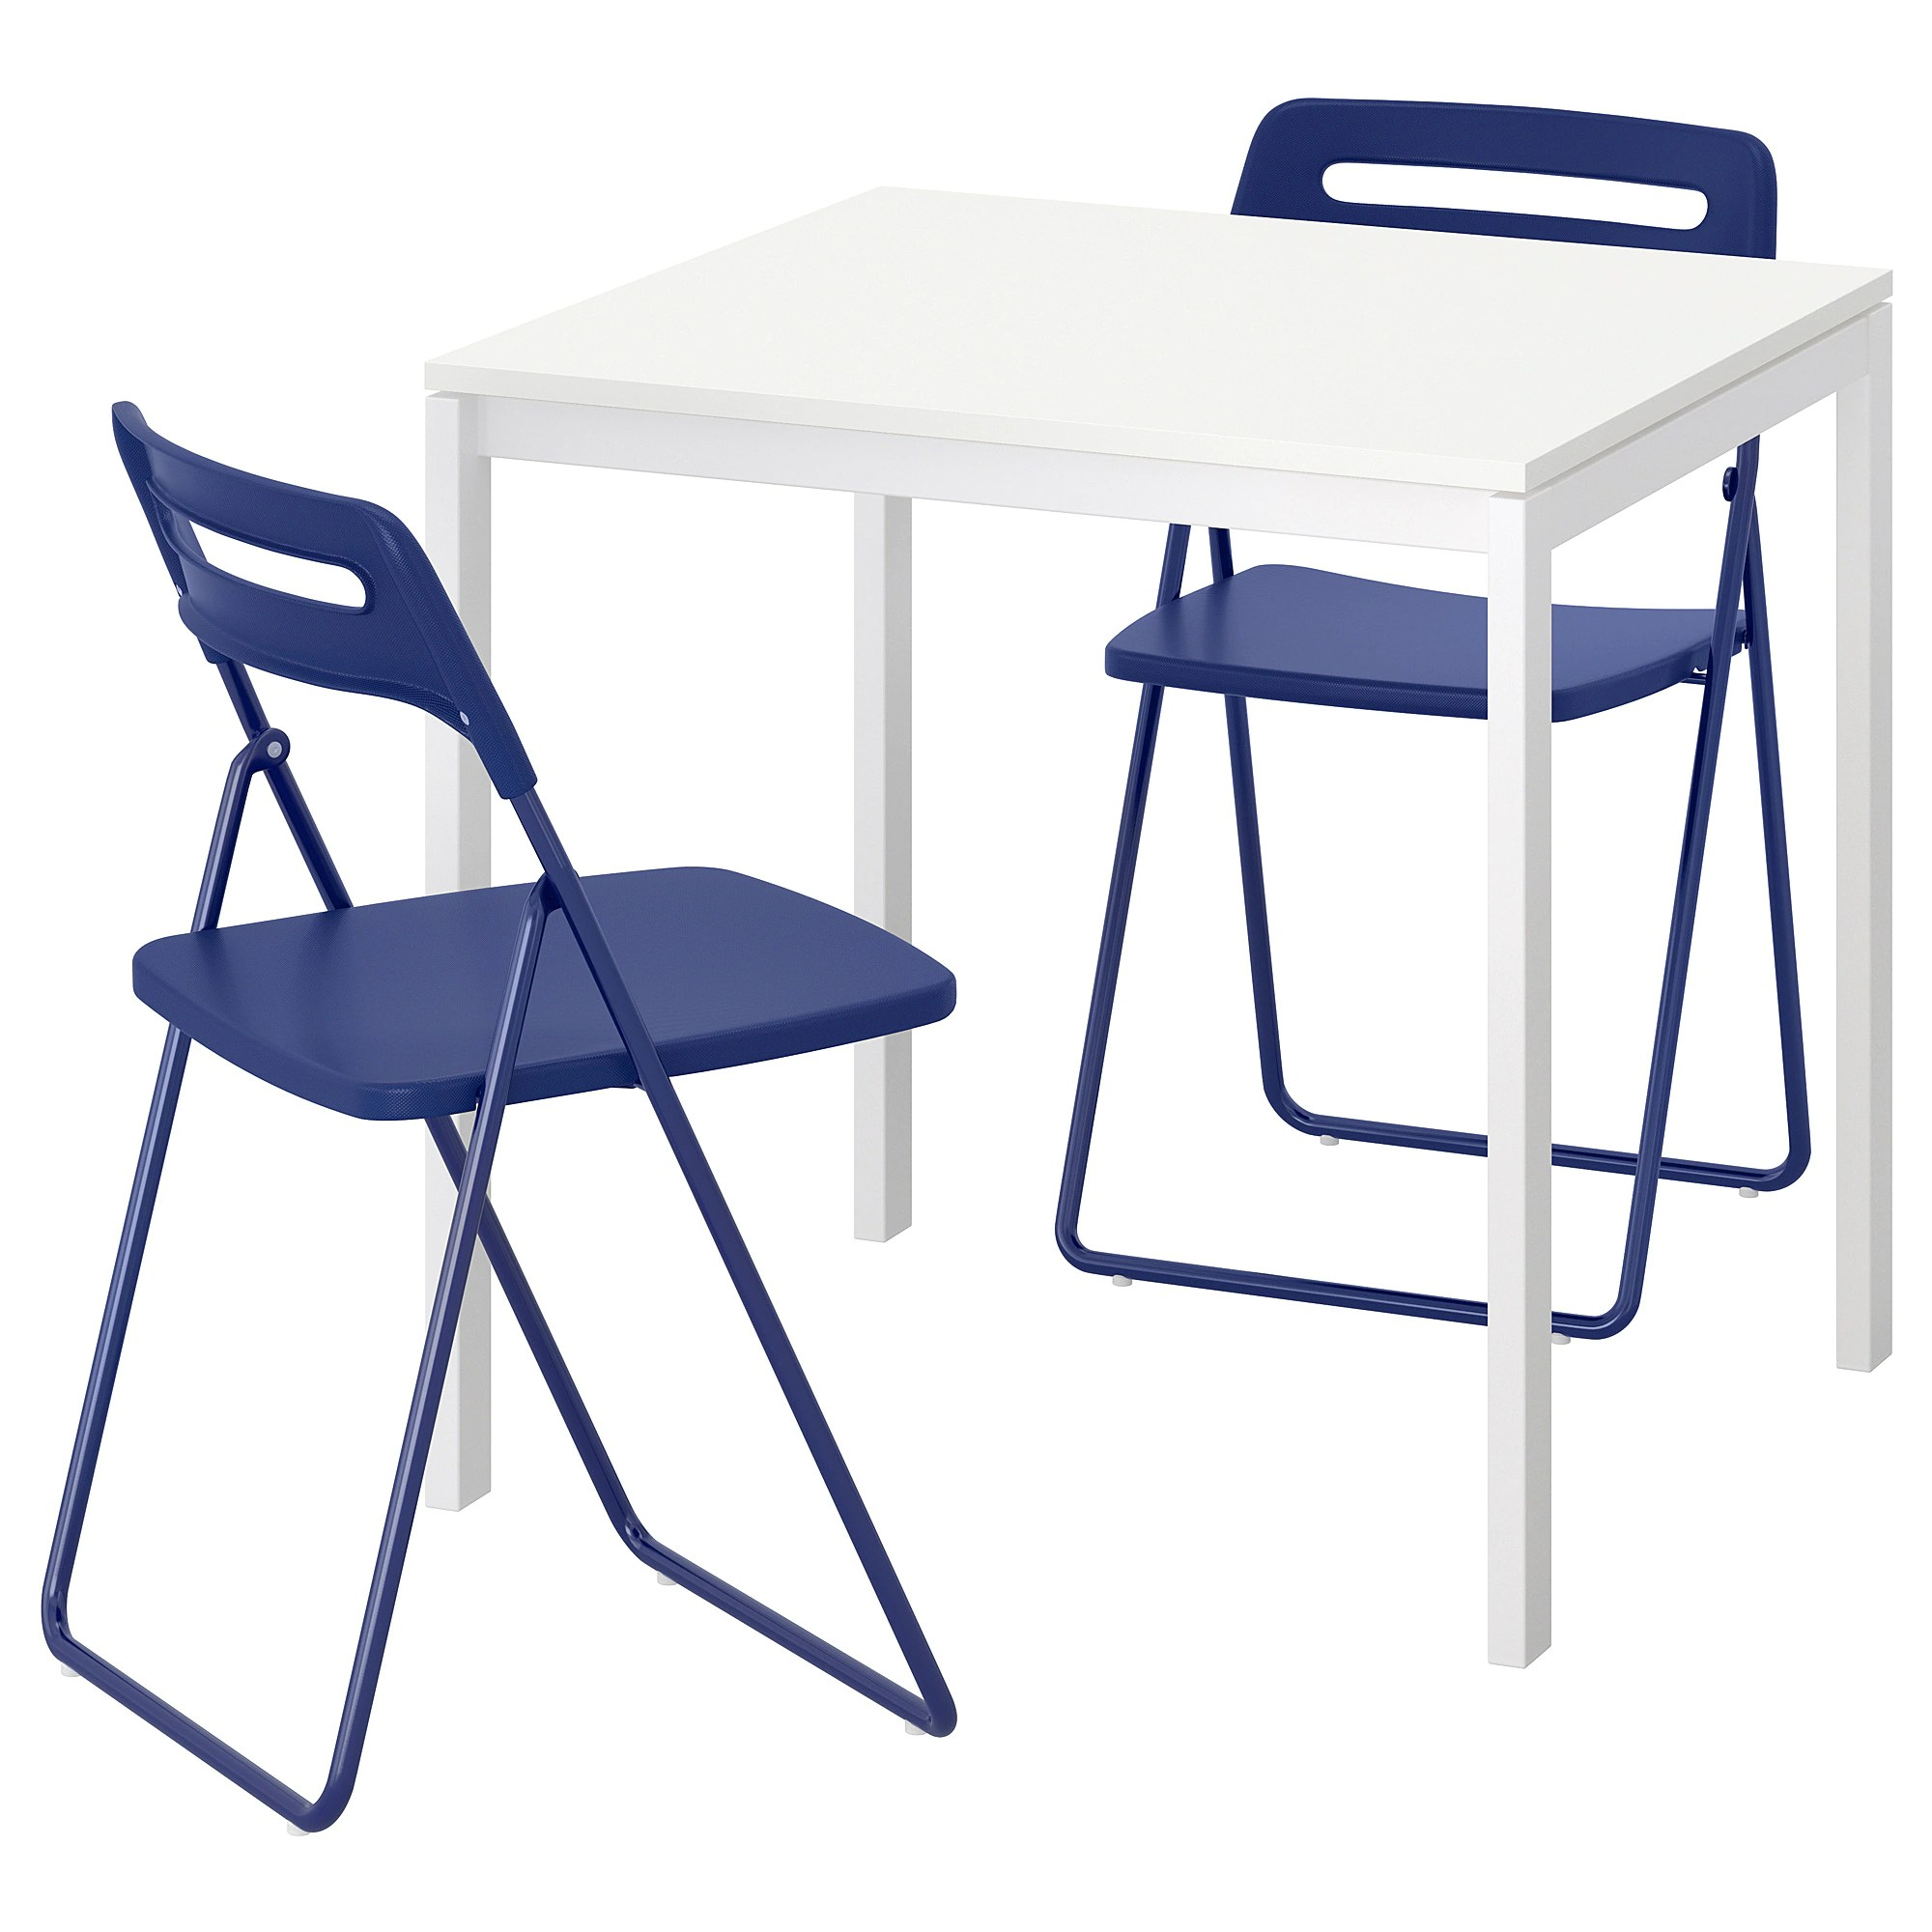 folding chair desk covers in store melltorp nisse table and 2 chairs ikea feedback